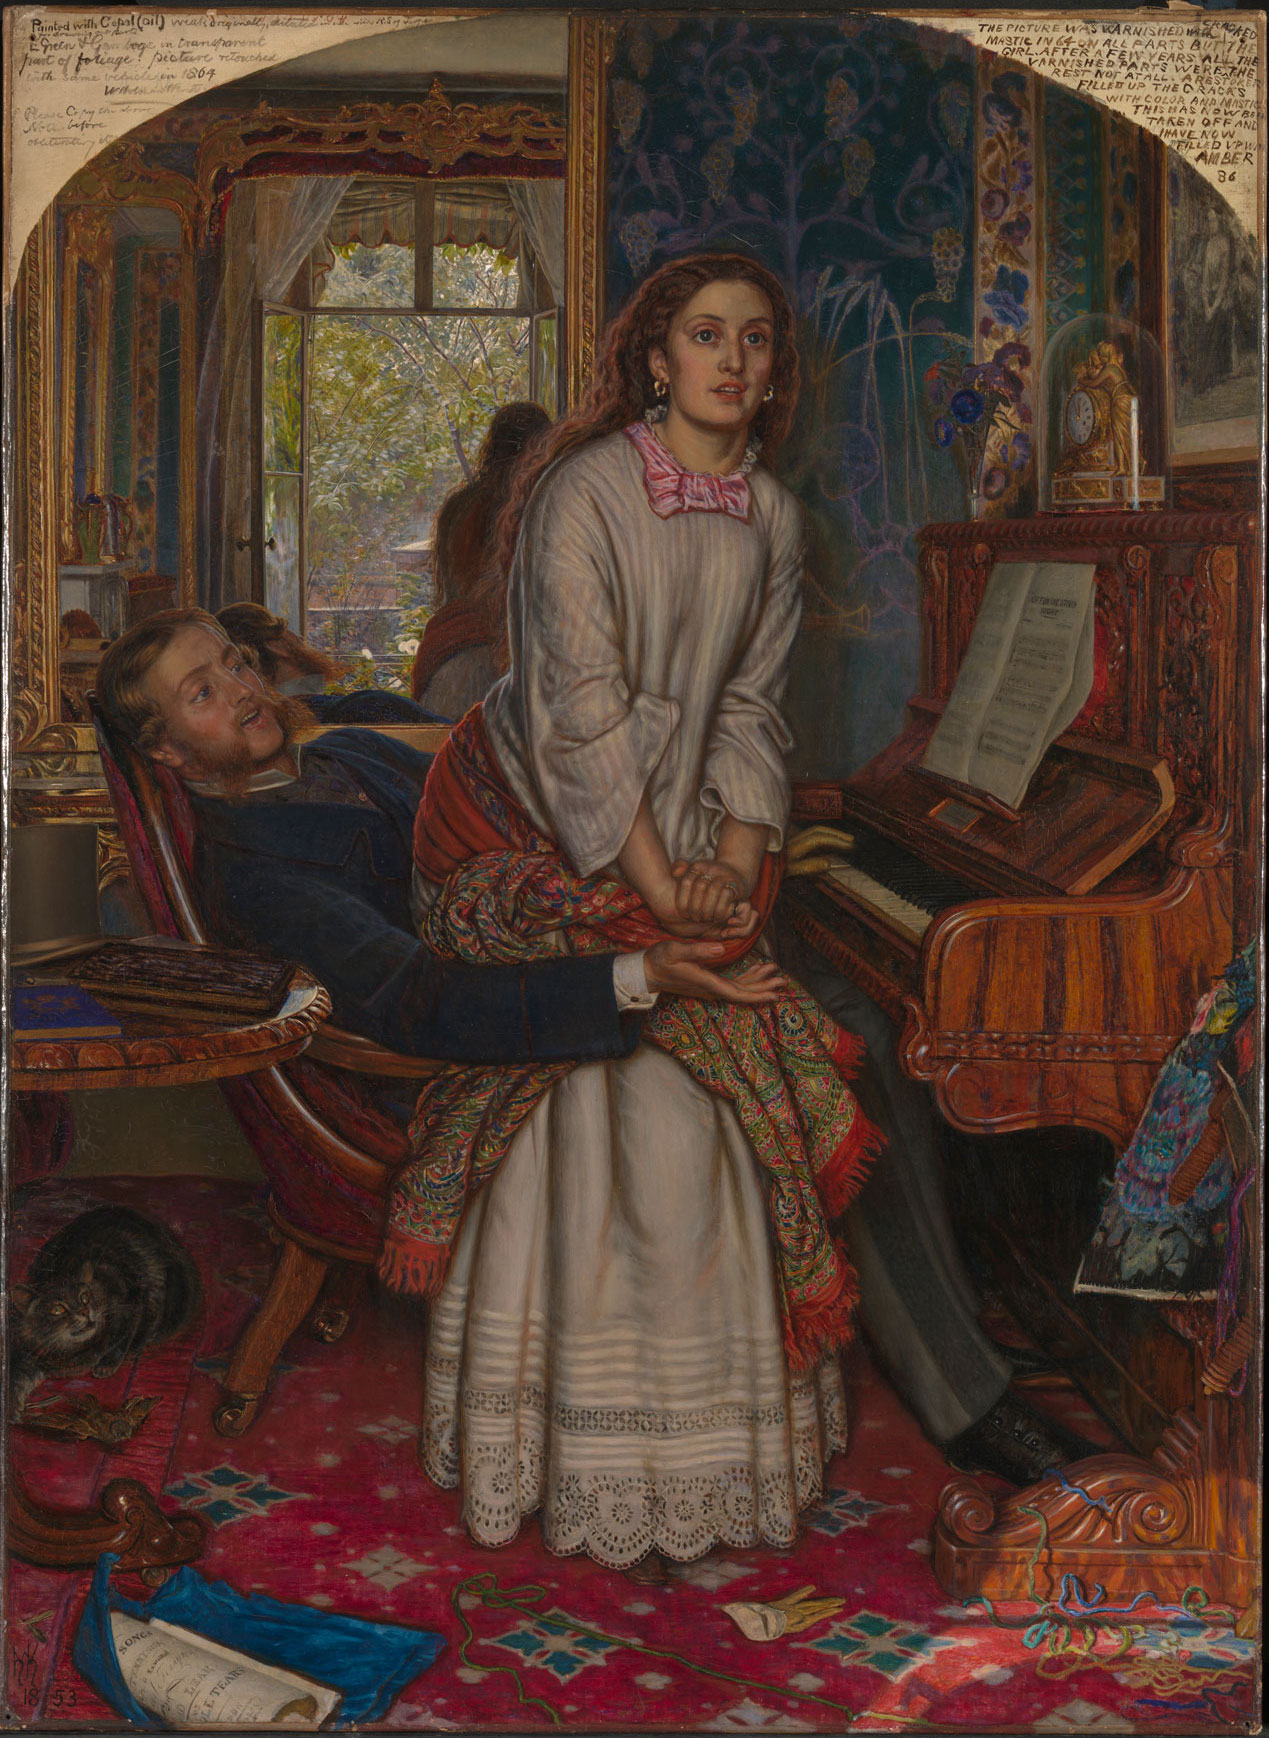 The Awakening Conscience By William Holman Hunt The British Library